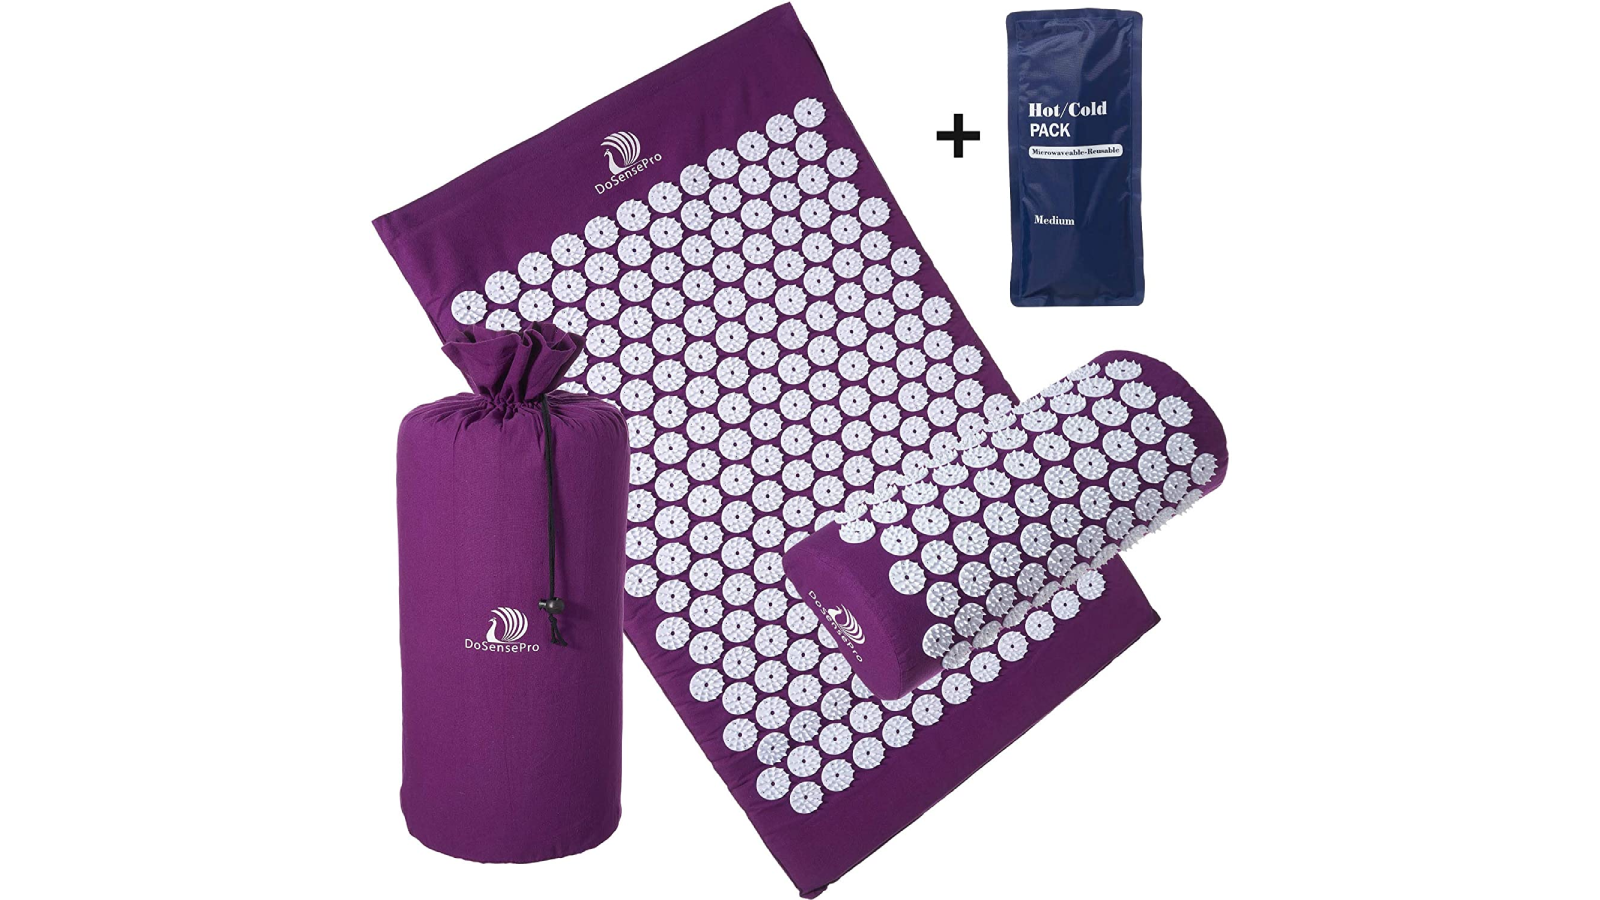 Rolled out purple mat and pillow, carry bag, and gel pack.